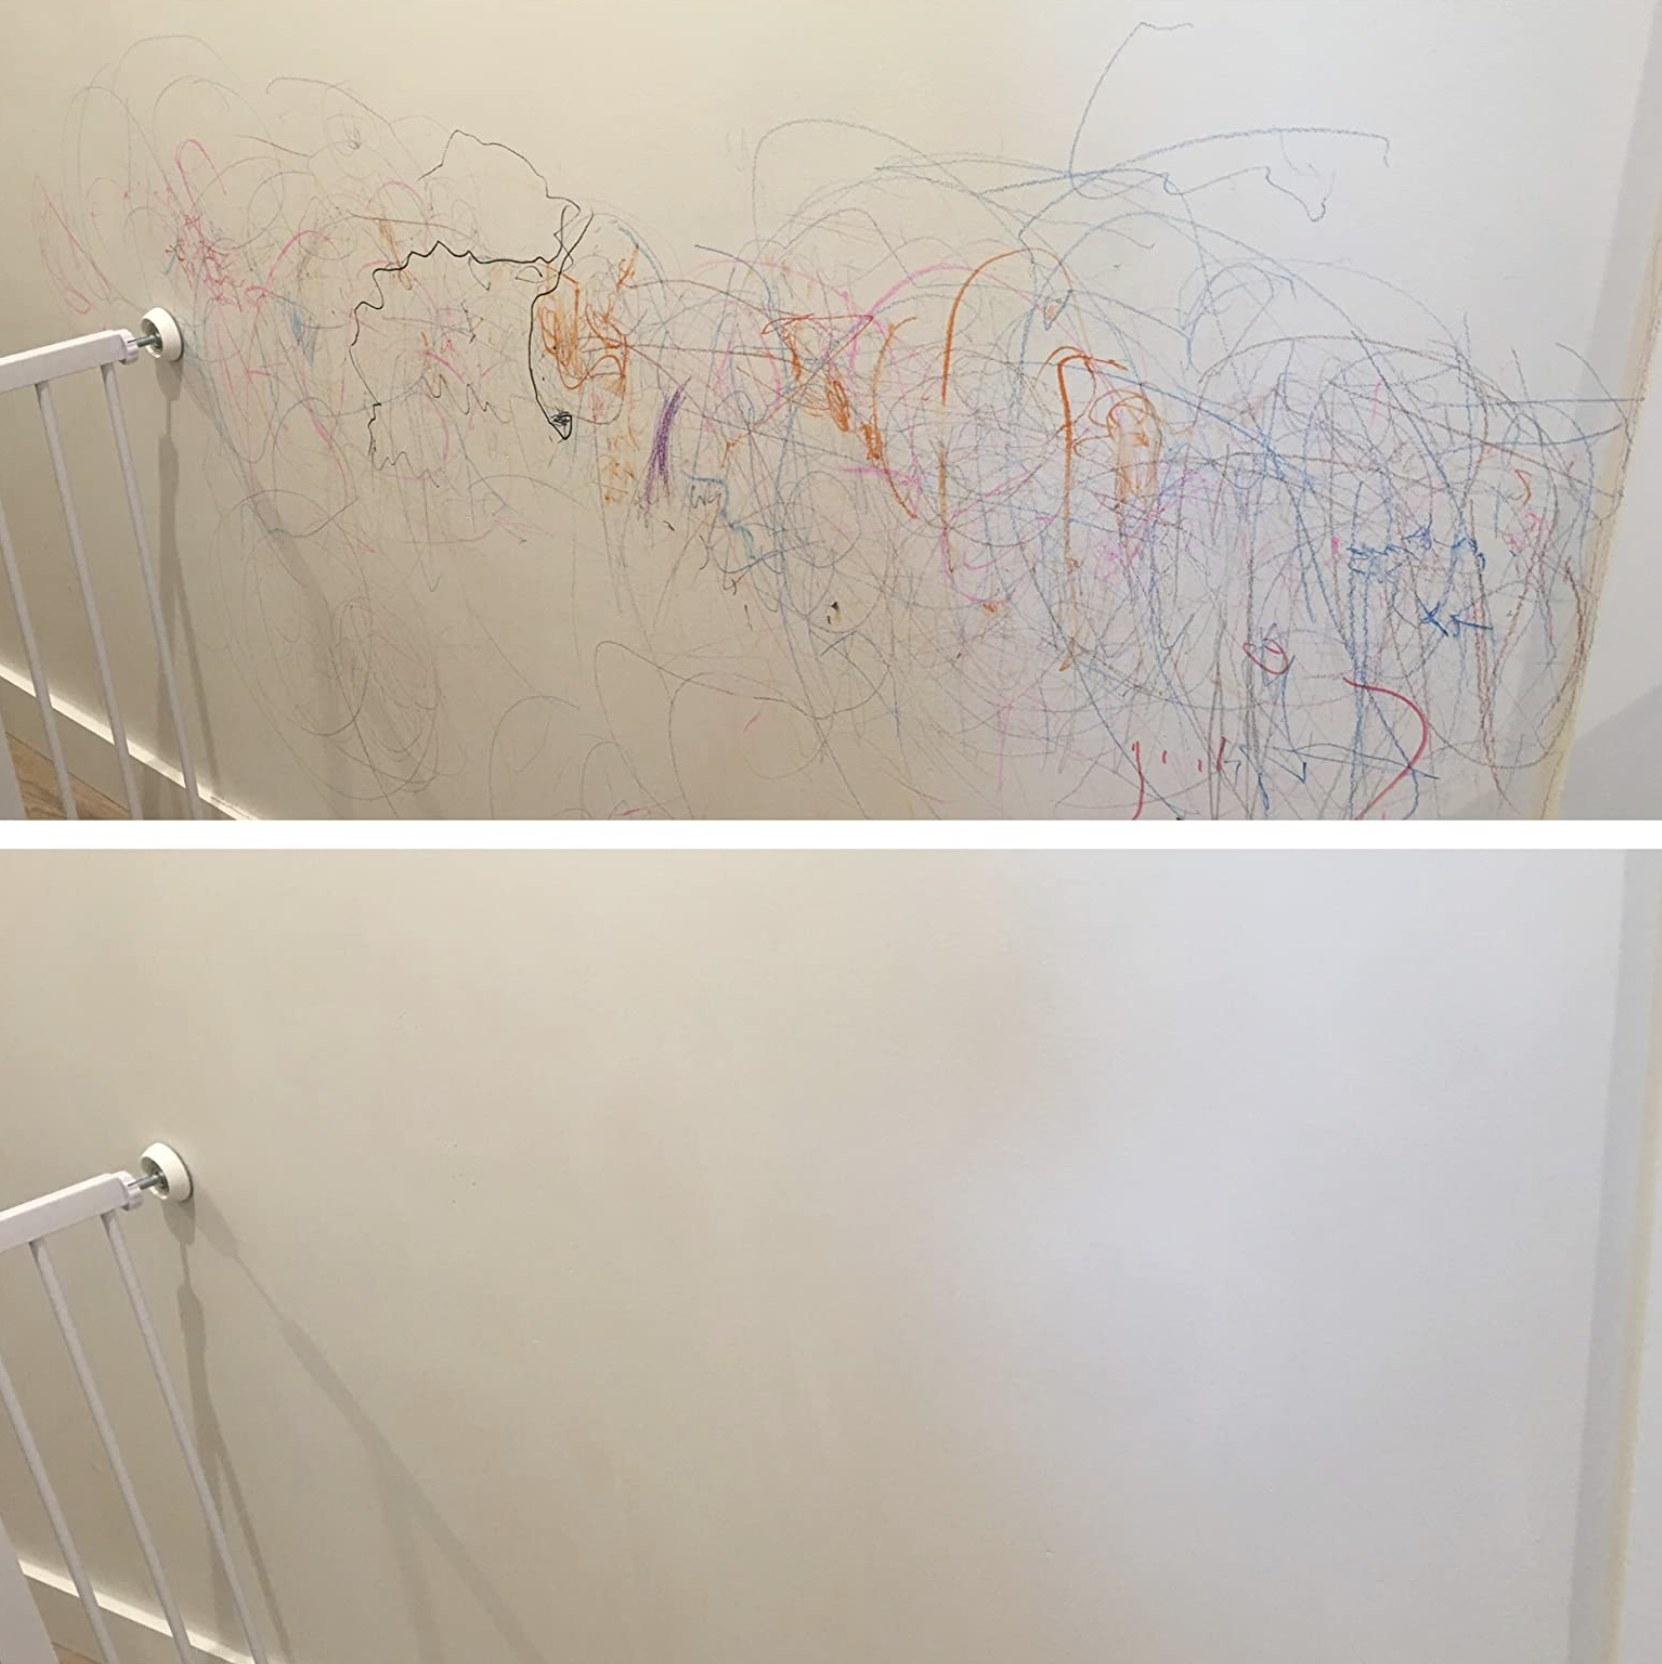 reviewer photo showing their wall covered in crayon, then the wall completely white and all the crayon removed after using the magic eraser